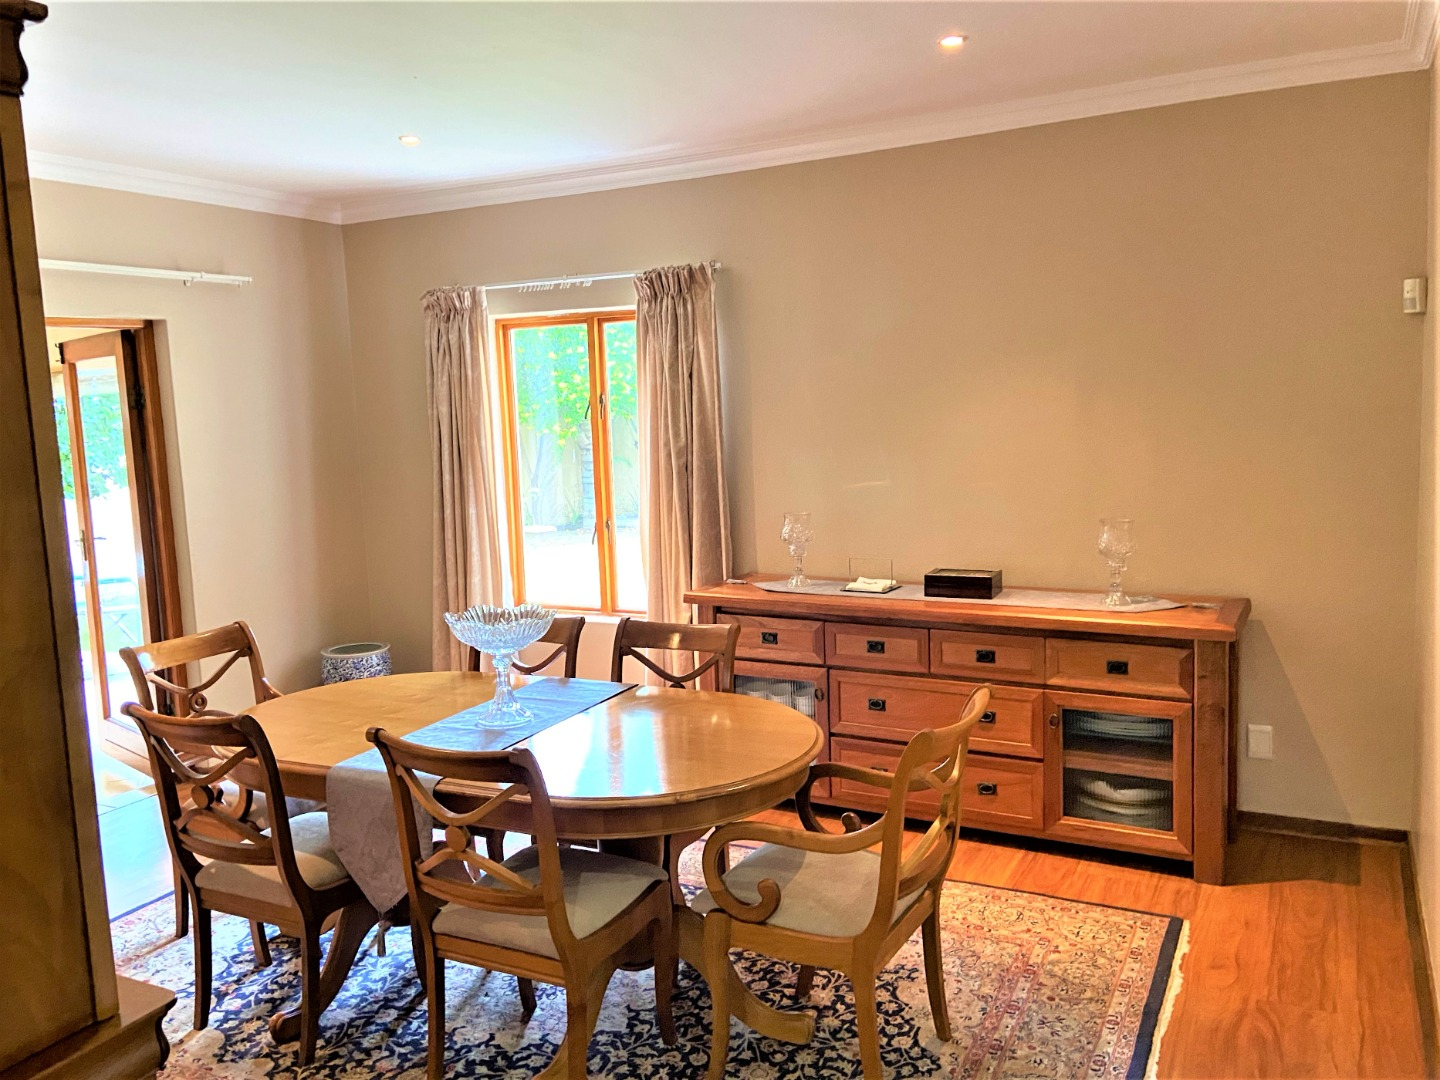 4 Bedroom House For Sale in Willow Acres